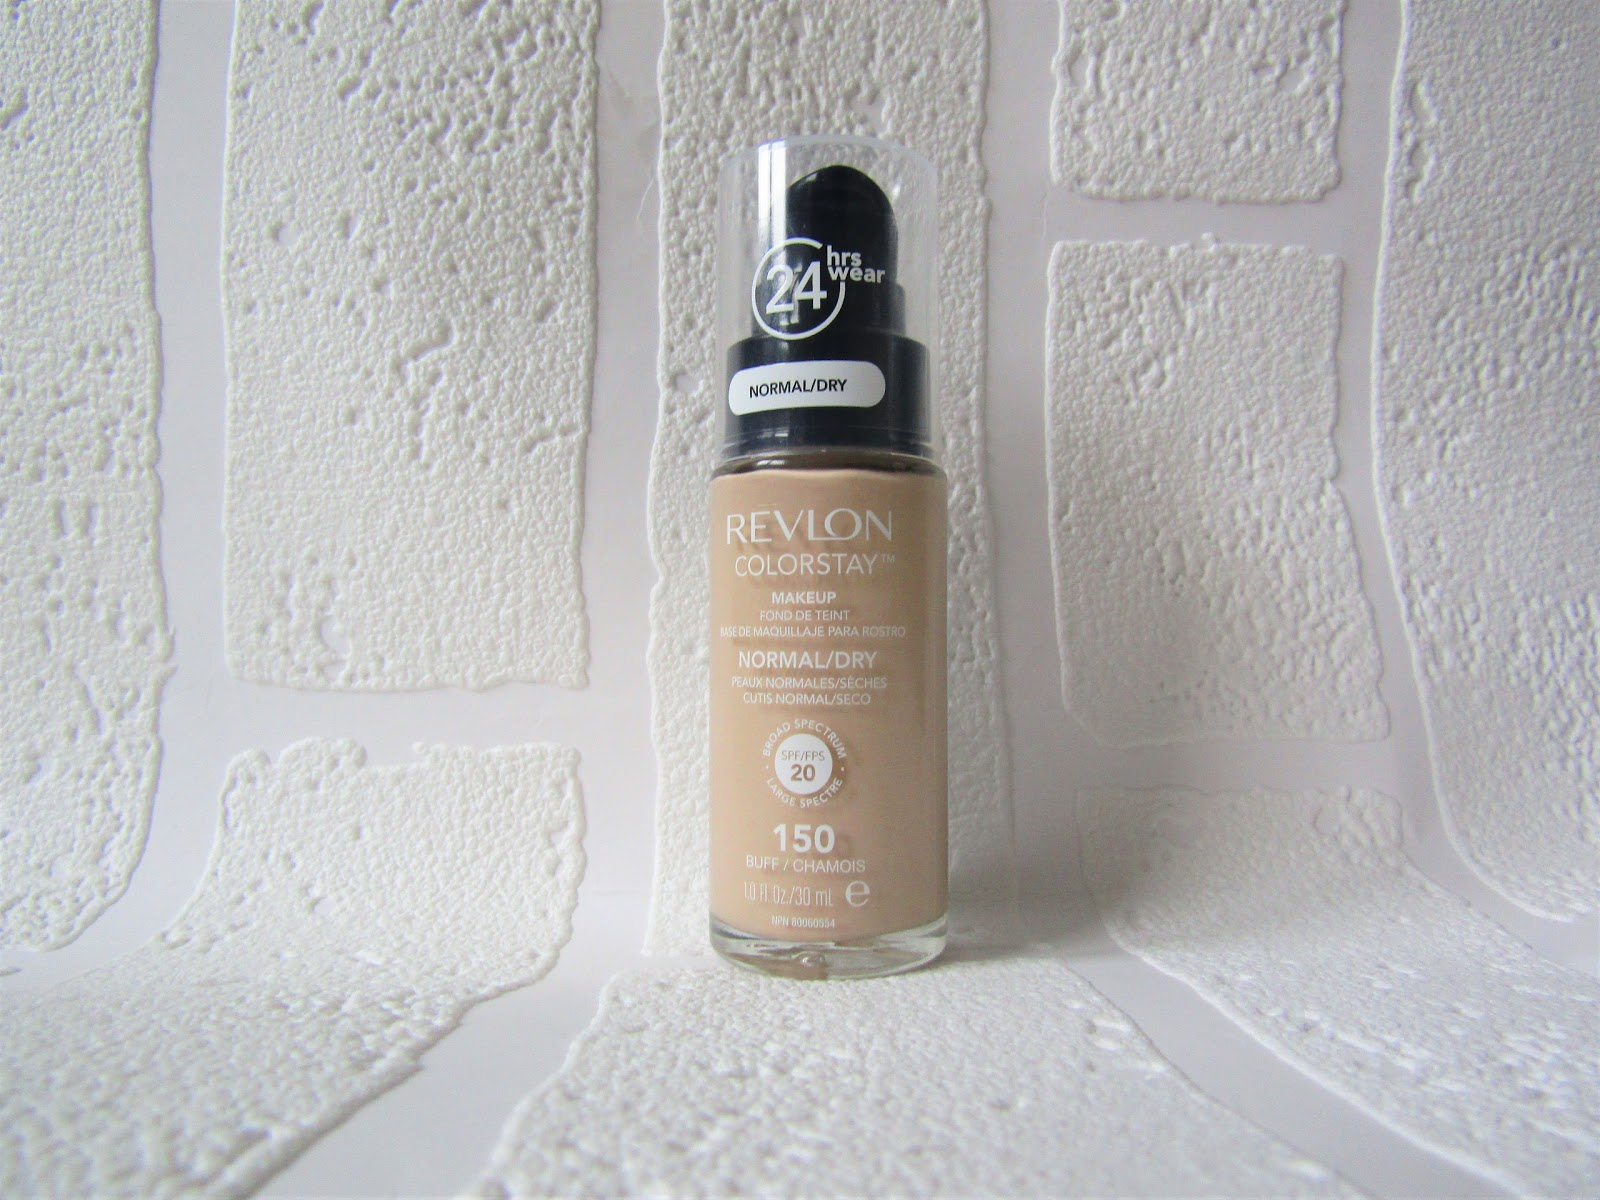 Revlon Colorstay Foundation Normal Dry Review Luci Barker Foundations I Struggle So Much To Find That Not Only Match My Skin Tone But Also Work Well With Type And Stay On The All Day Without Going